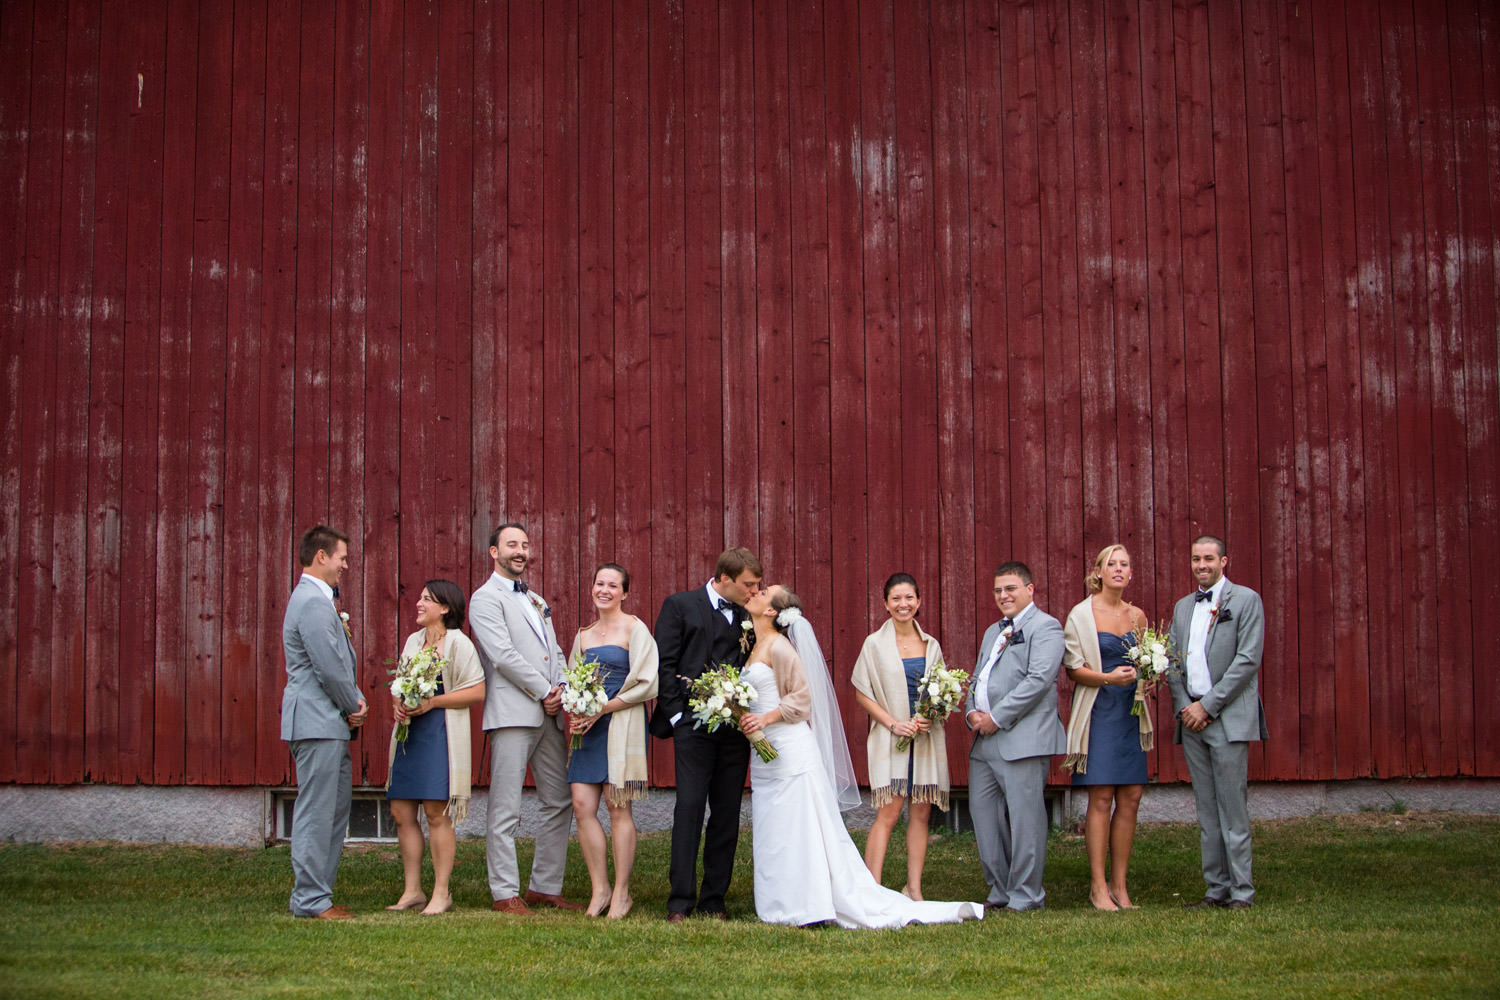 A wedding party group portrait at The Inn at Mountain View in Vermont by wedding photographer Stina Booth